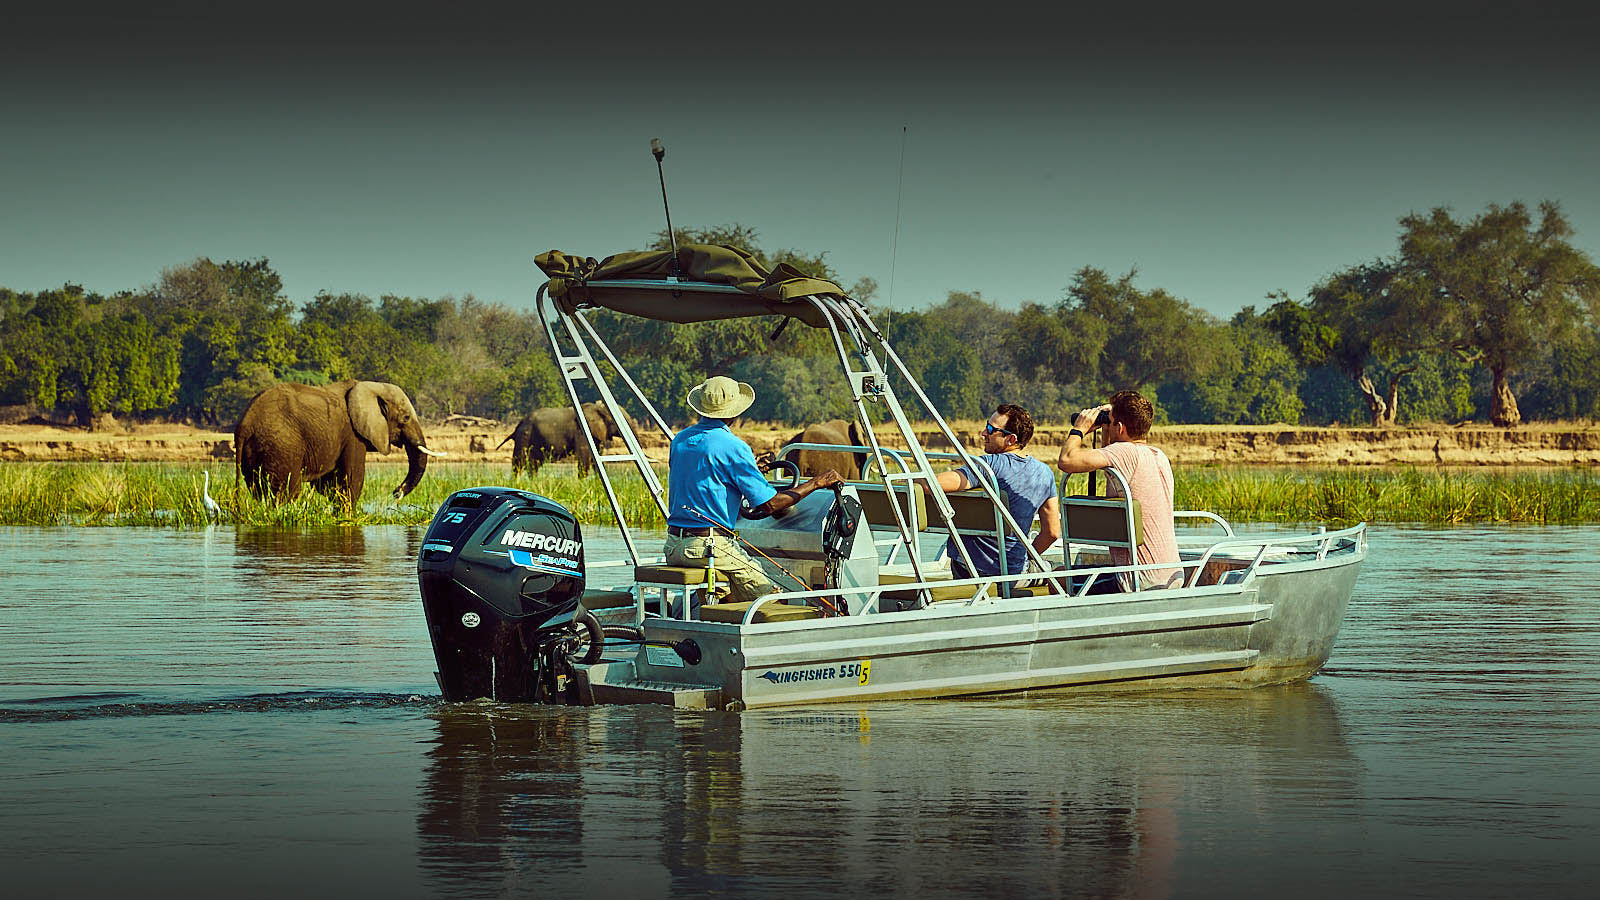 zambezi grande zambia-in-style-lower-zambezi-national-park-modern-lodges-river-safari-adventure-elephants